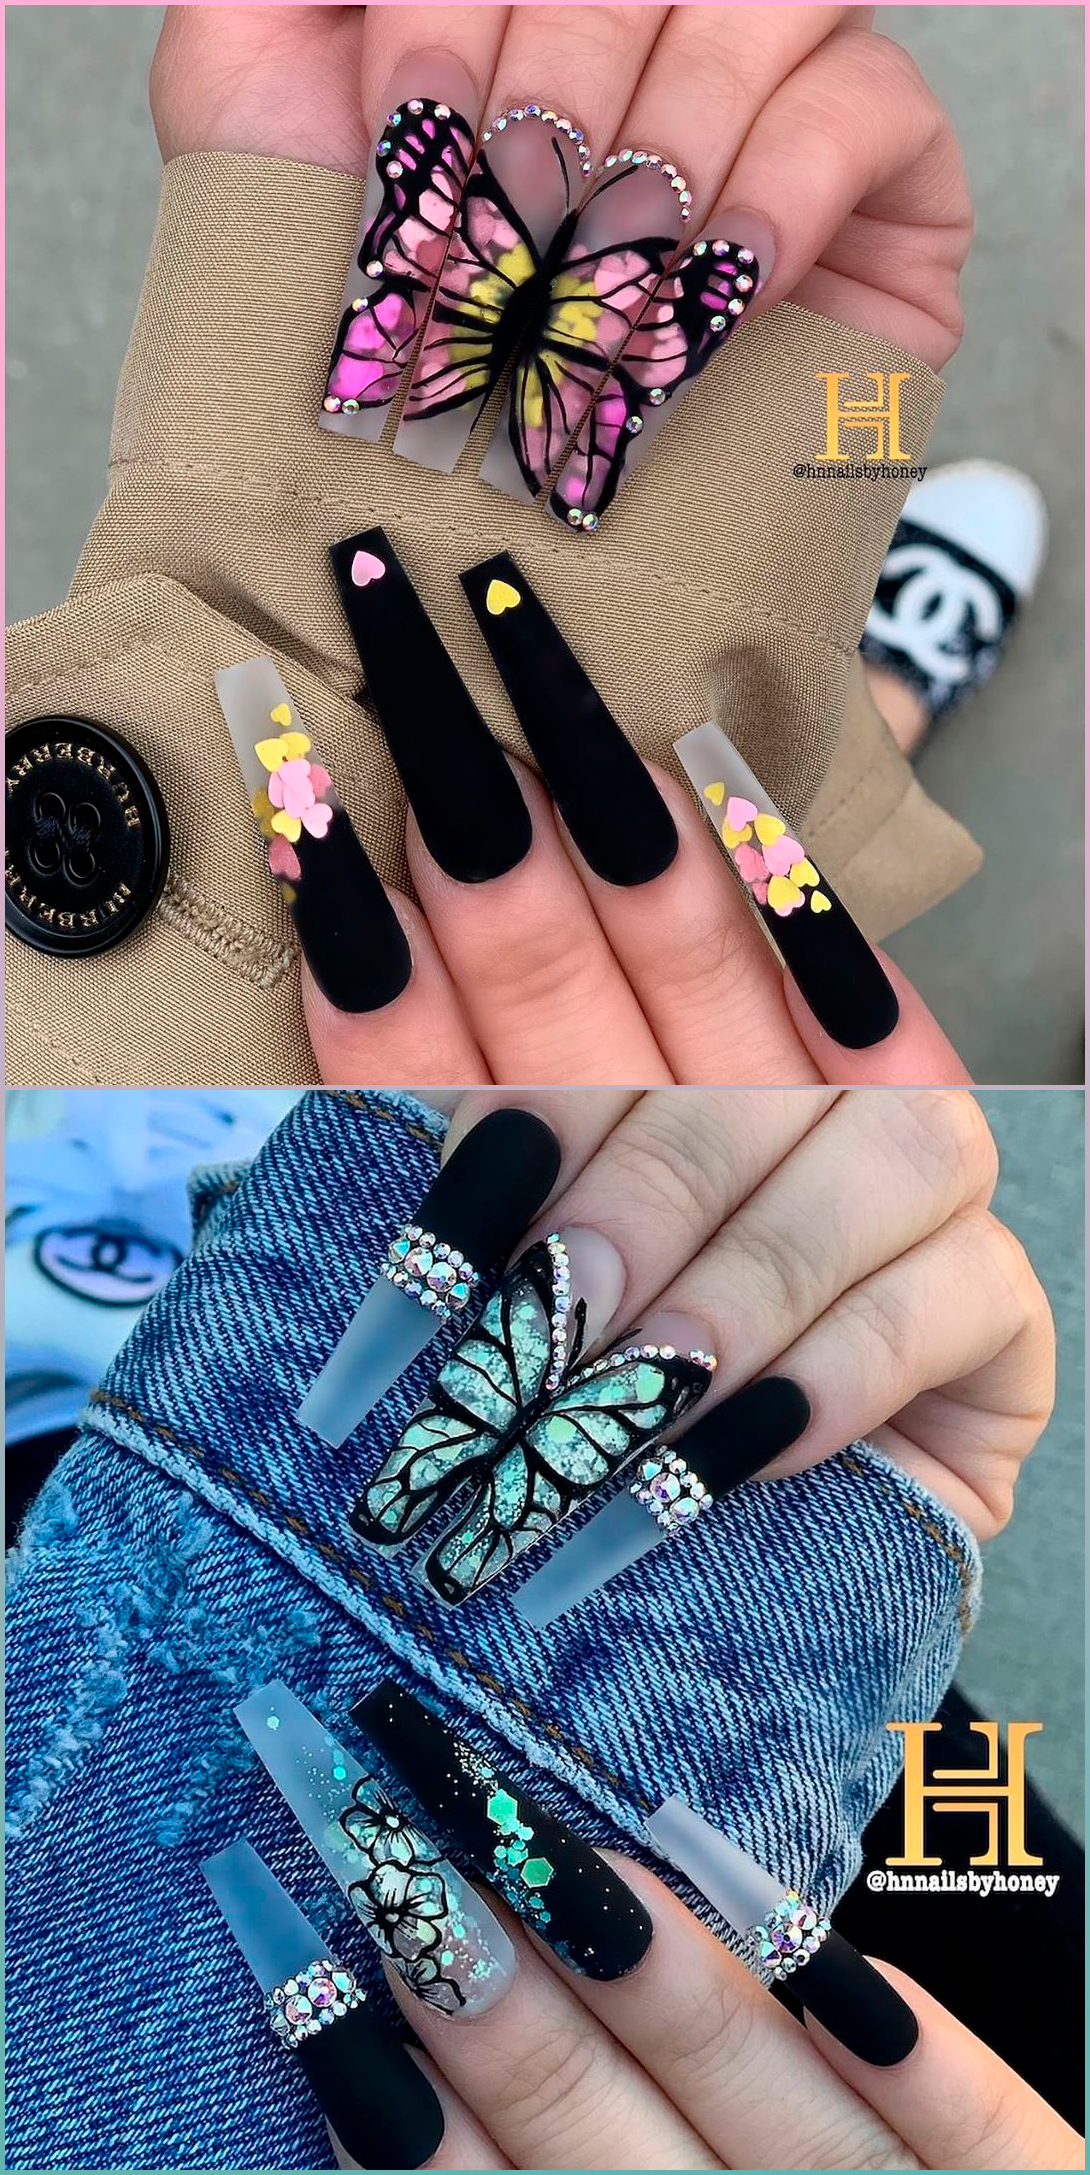 Black Butterfly Nails Acrylic In 2020 Black Acrylic Nails Short Acrylic Nails Designs Black Acrylic Nail Designs